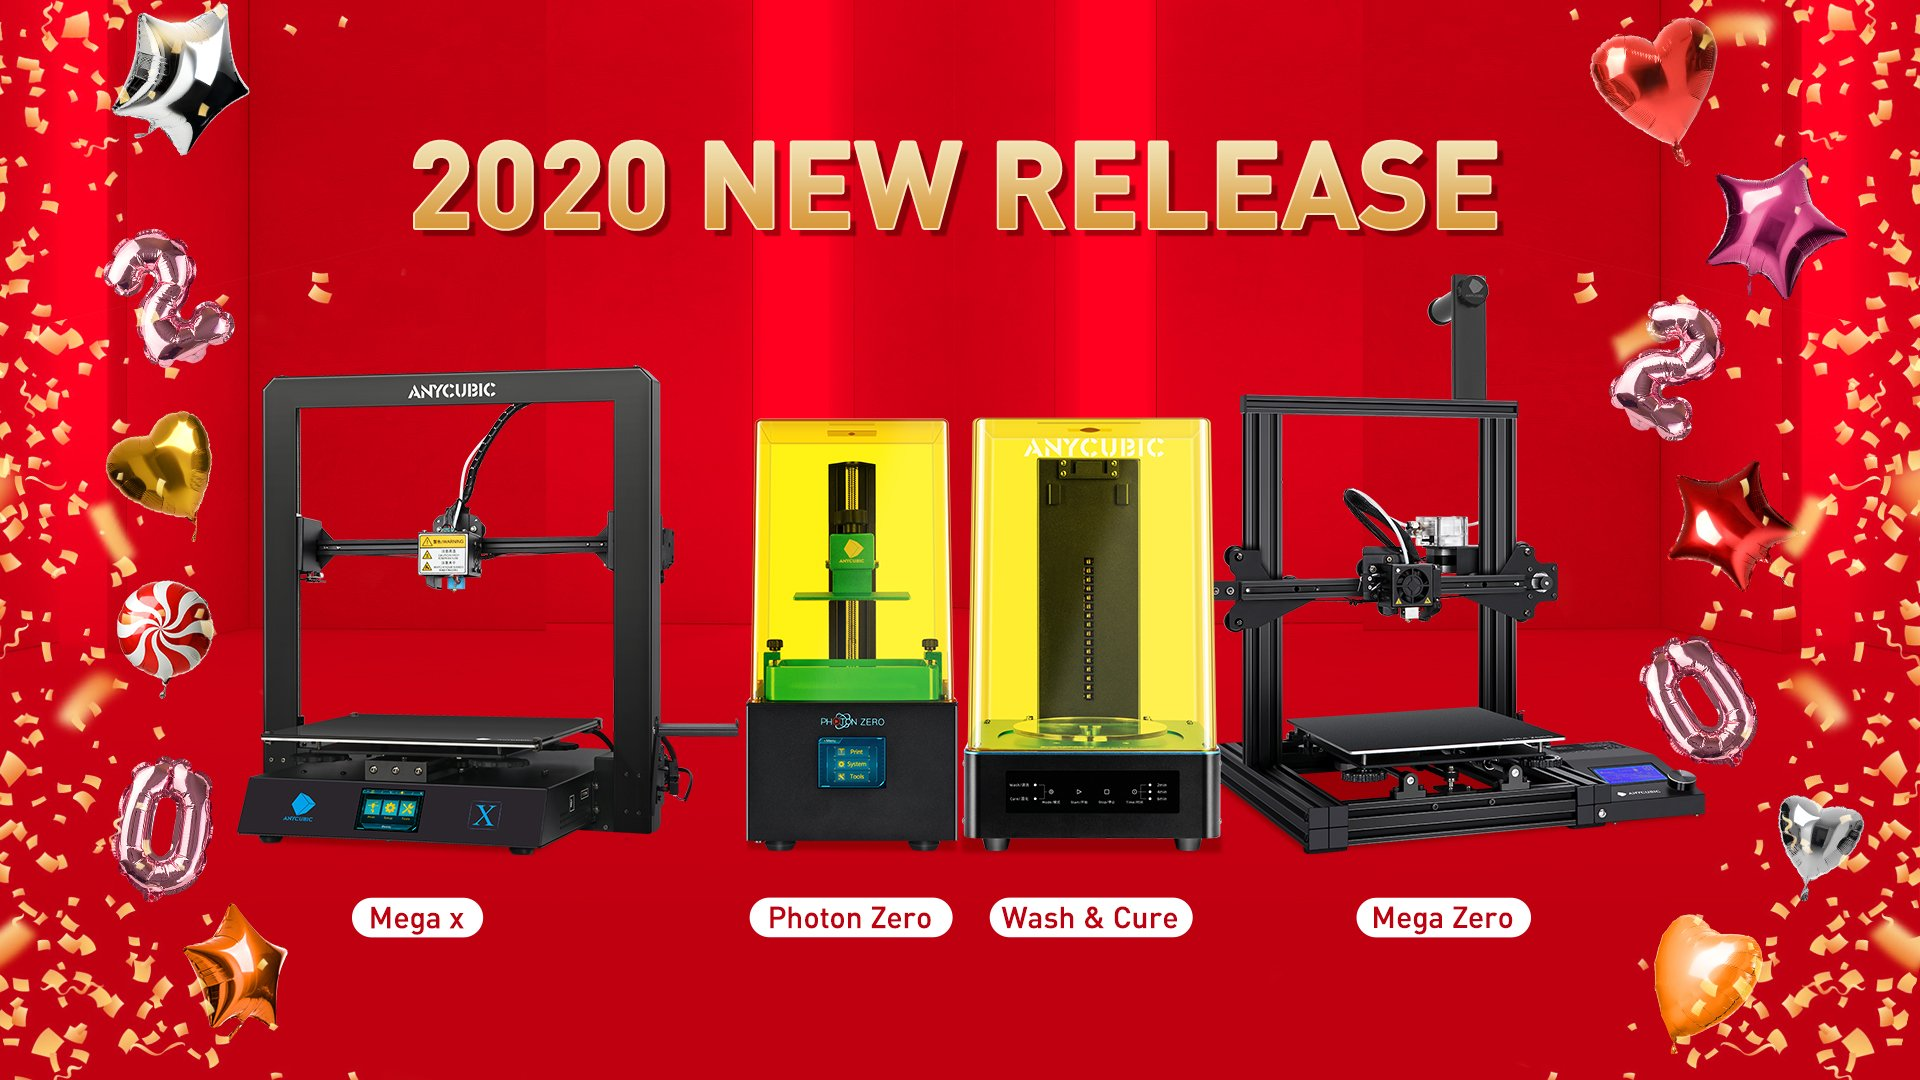 Anycubic Debuts New Printers and Wash & Cure Machine   All3DP